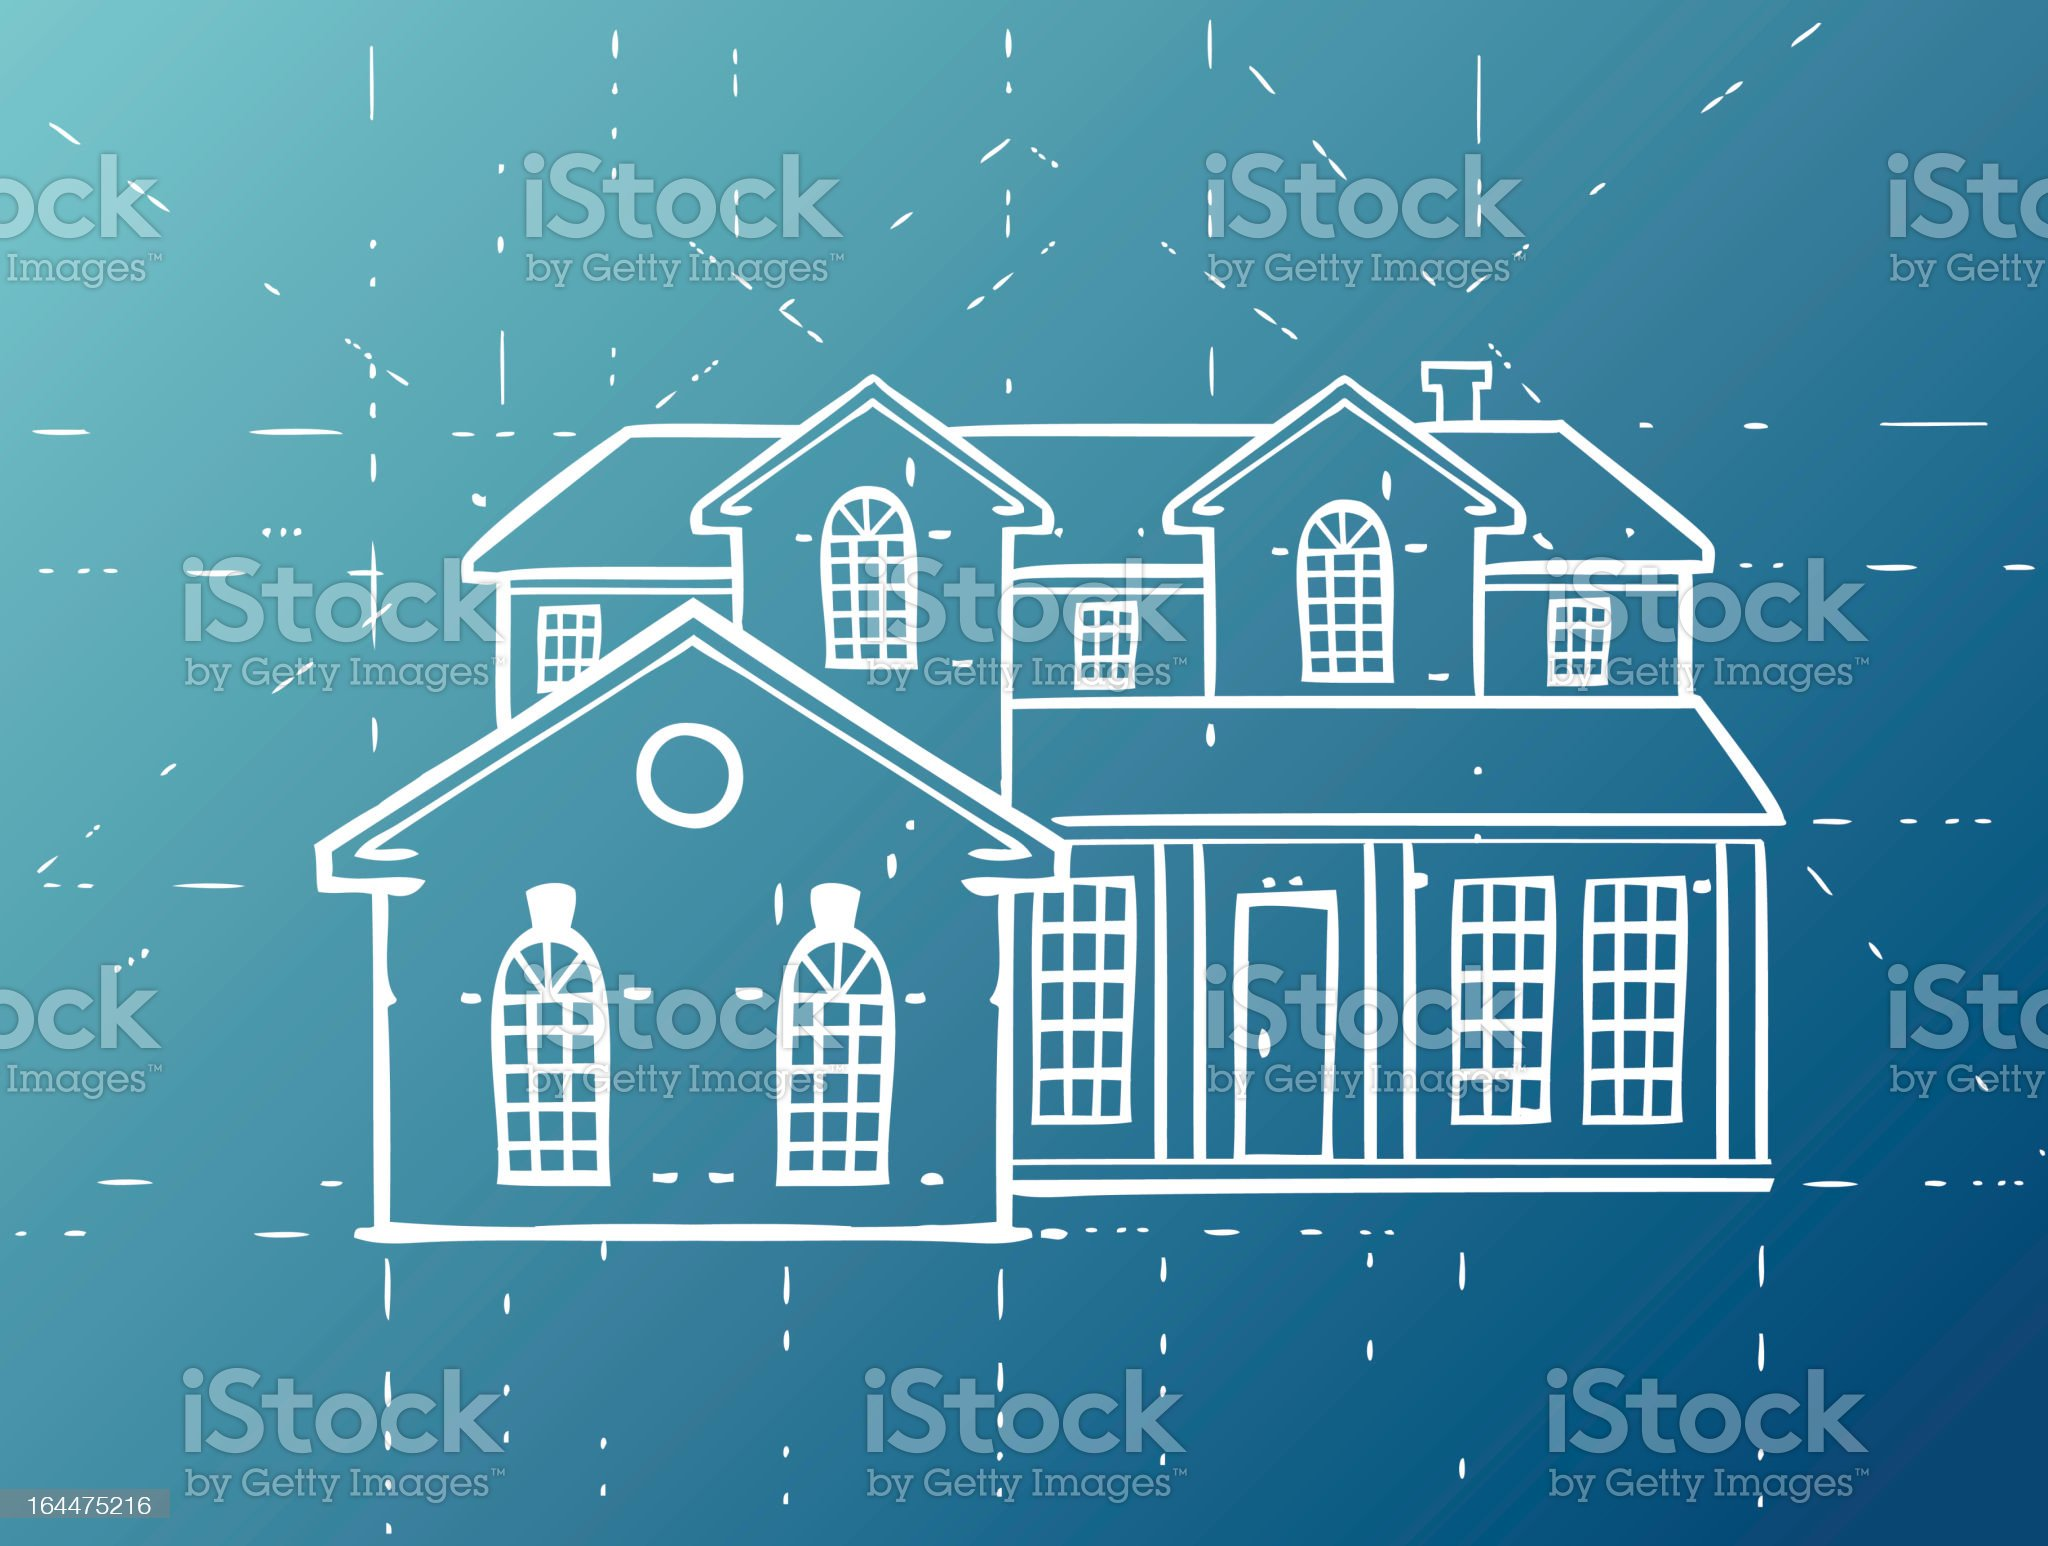 Home Blueprint royalty-free stock vector art